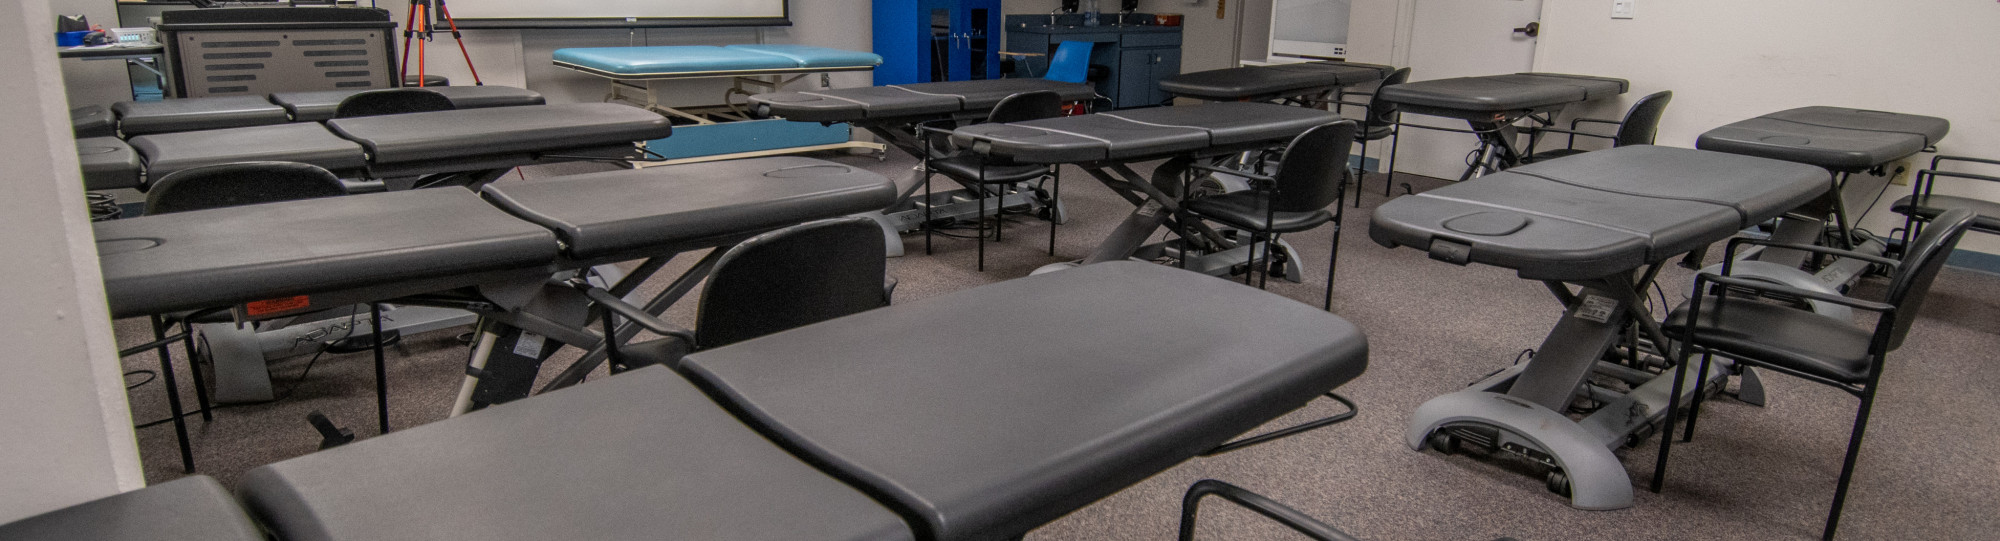 kinesiology classroom with practice beds